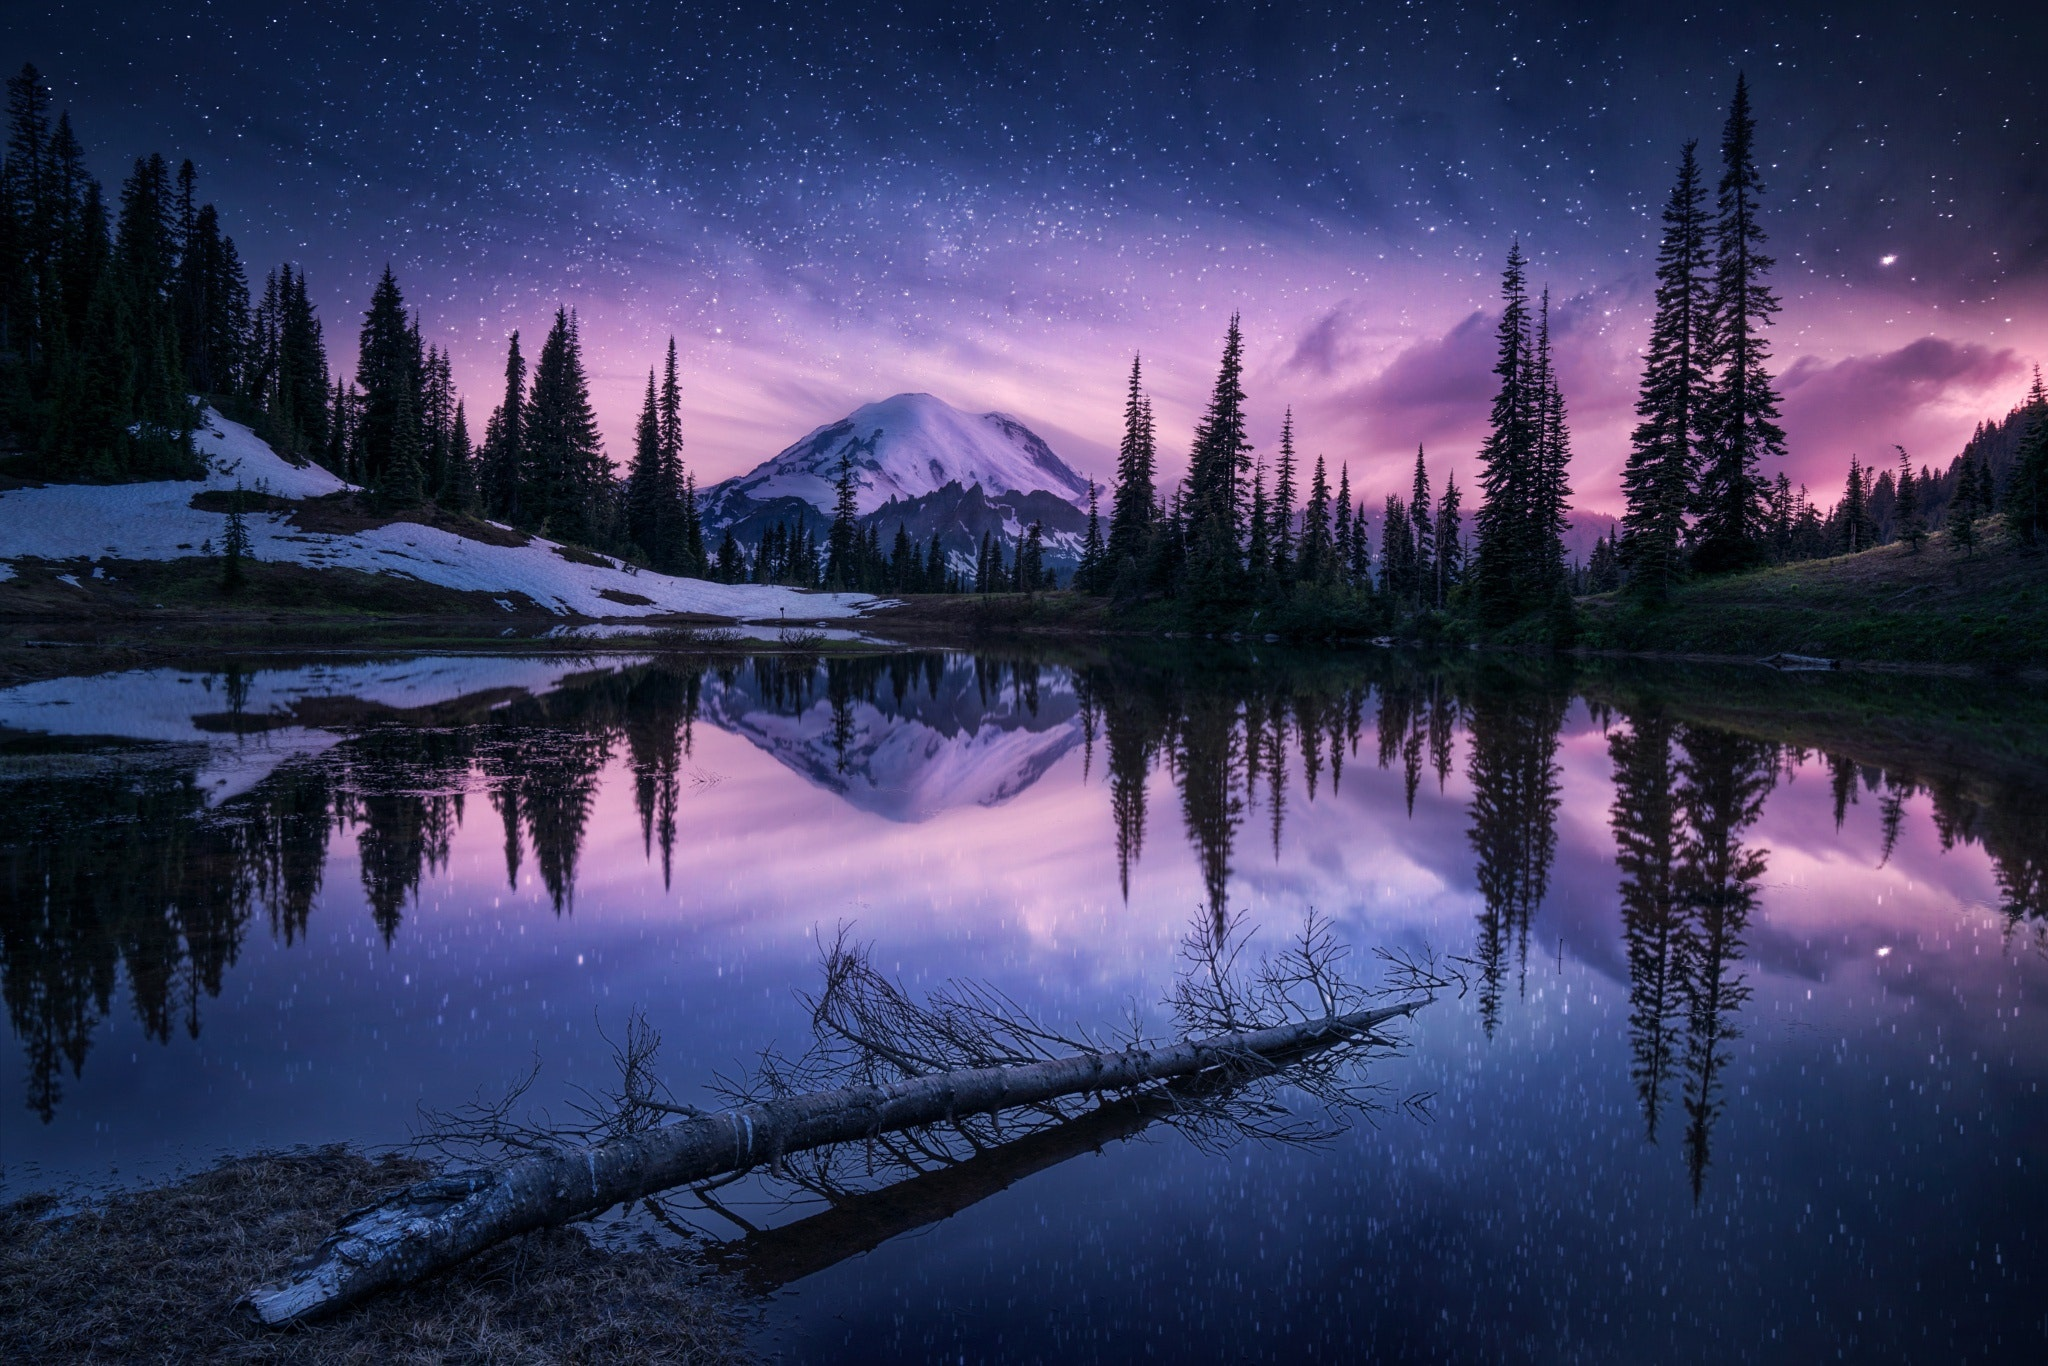 Lake Nature Night Reflection, HD Nature, 4k Wallpapers